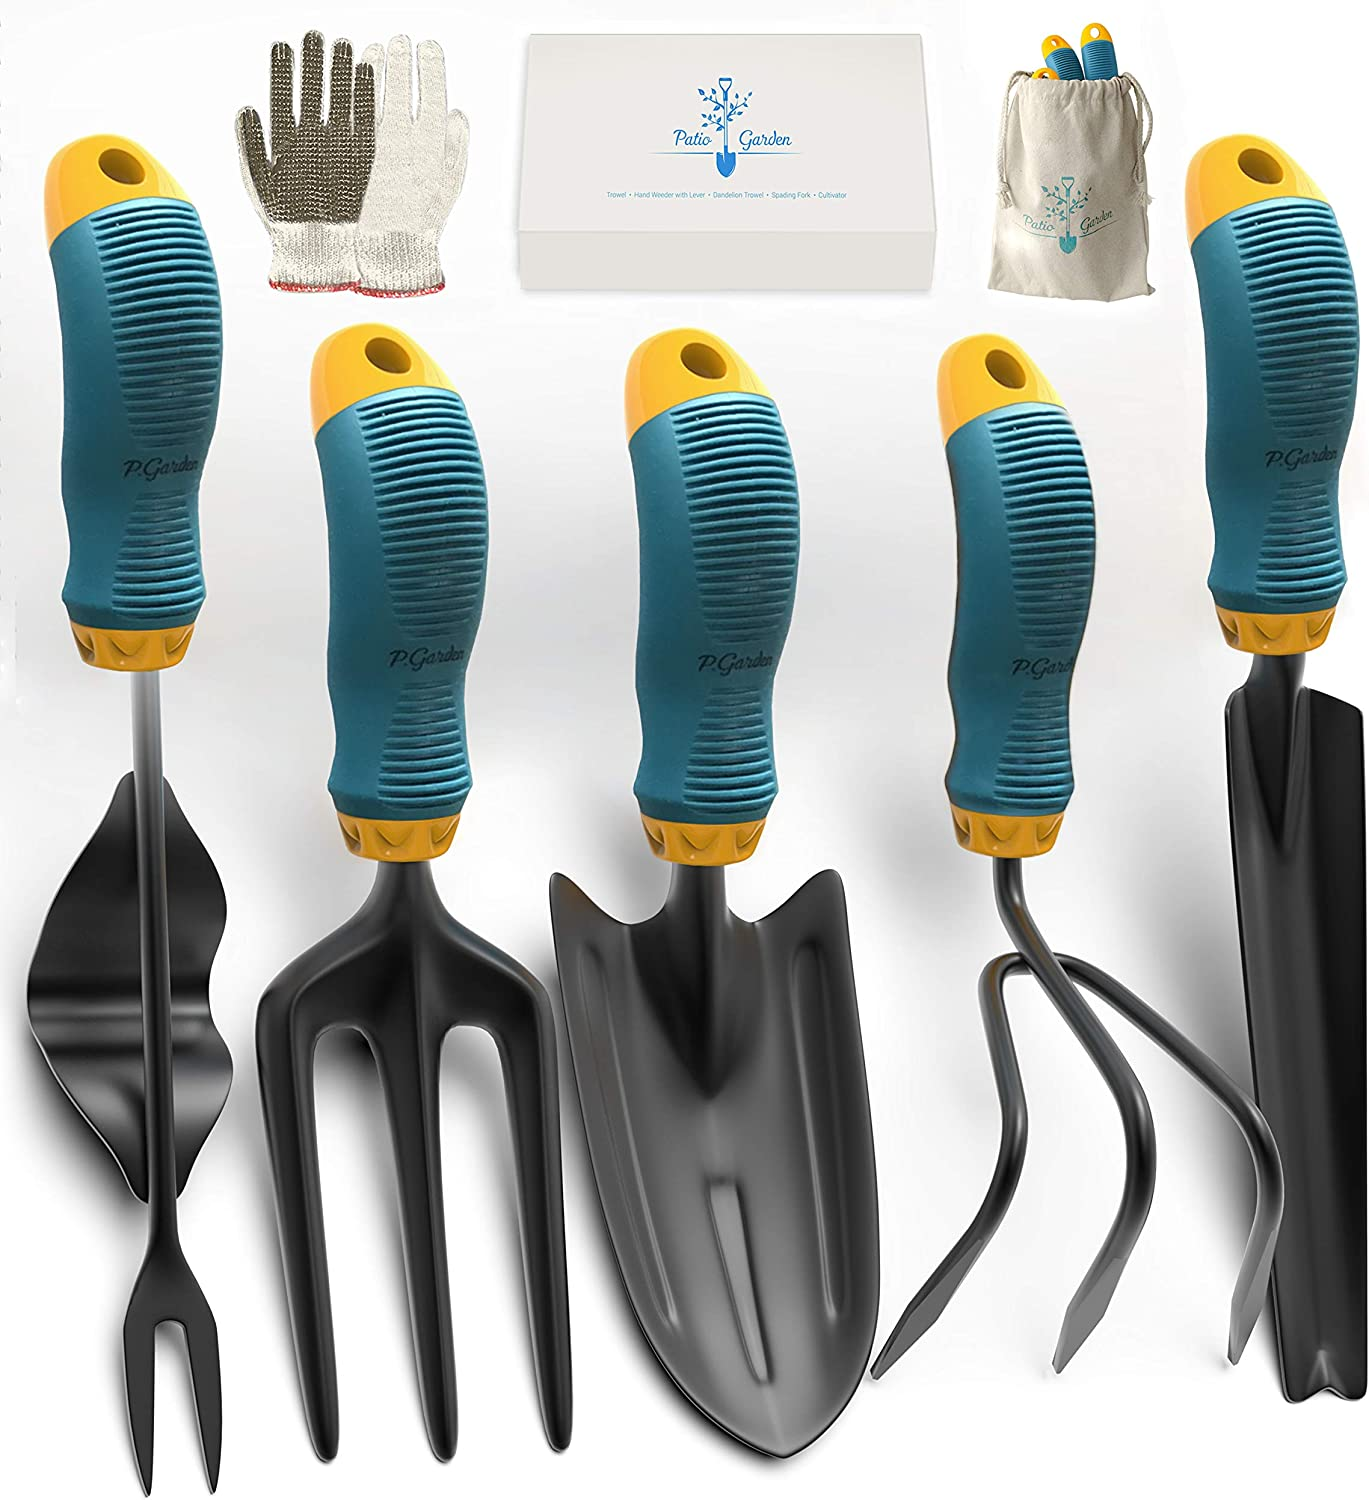 Gardening Tools Set from Alloy Steel - Heavy Duty Garden Tool Set with Rubber Non-Slip Handle - Gardening Kit with Gloves and Bag - Ergonomic Garden Hand Tools - Gardening Gifts for Men and Women : Garden & Outdoor